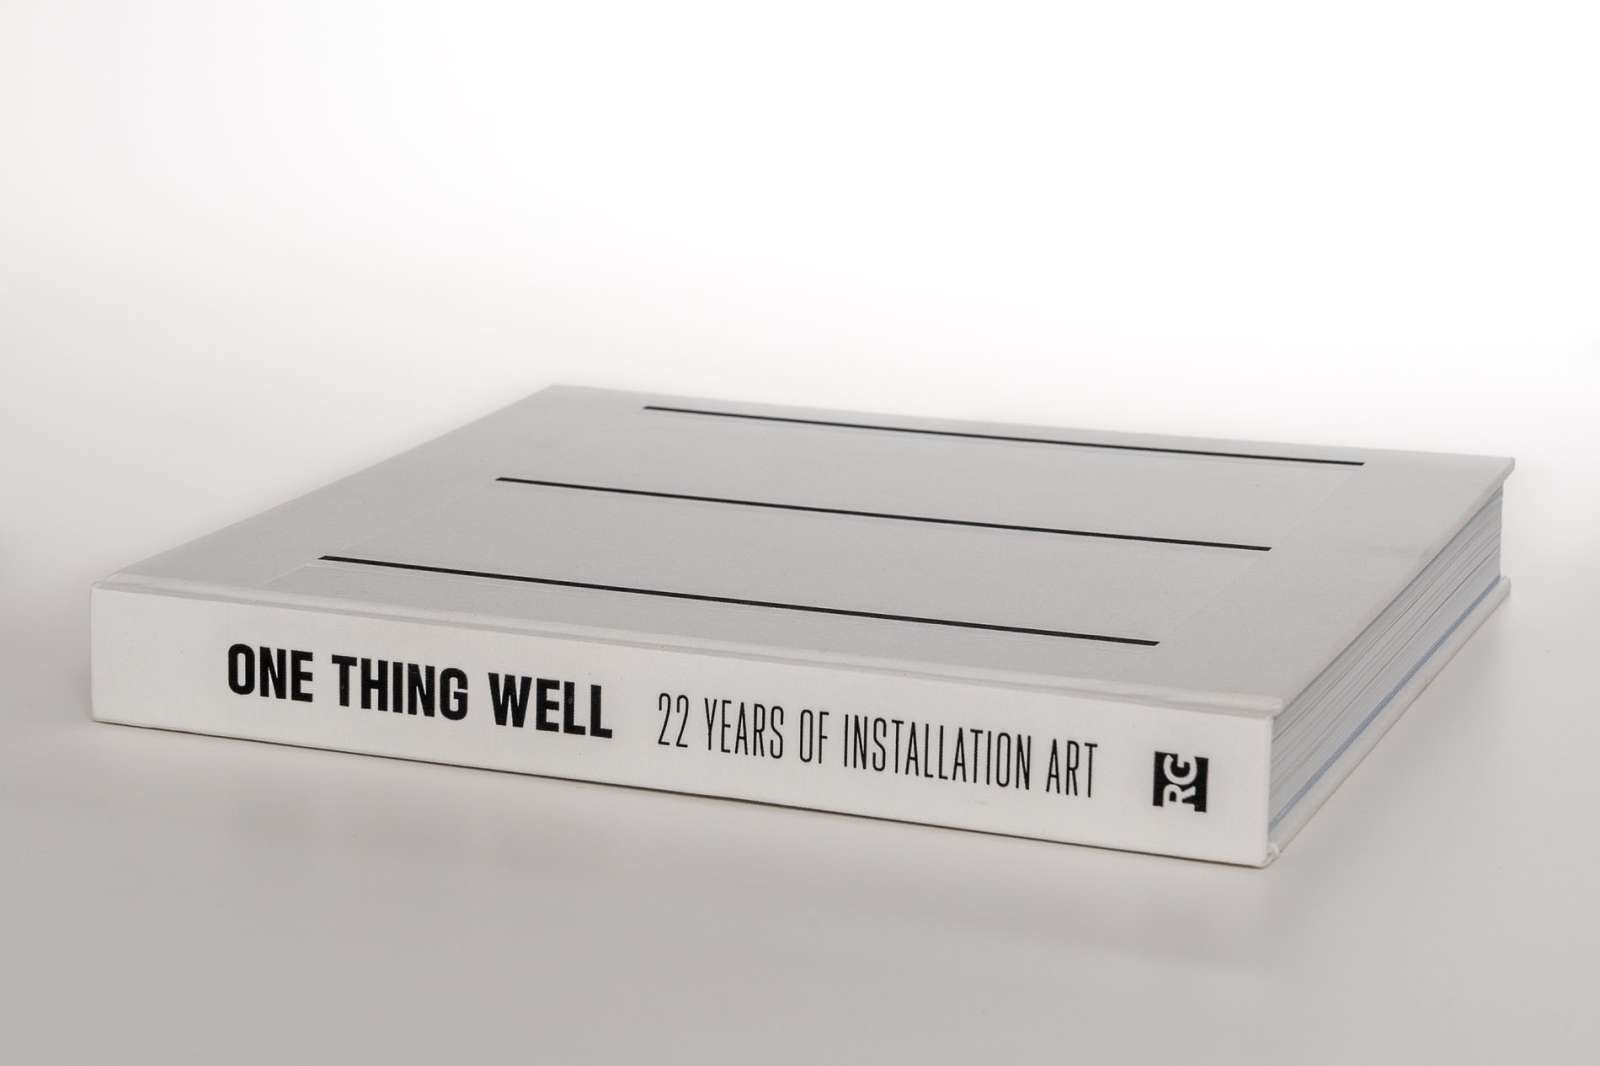 One Thing Well: 22 Years of Installation Art